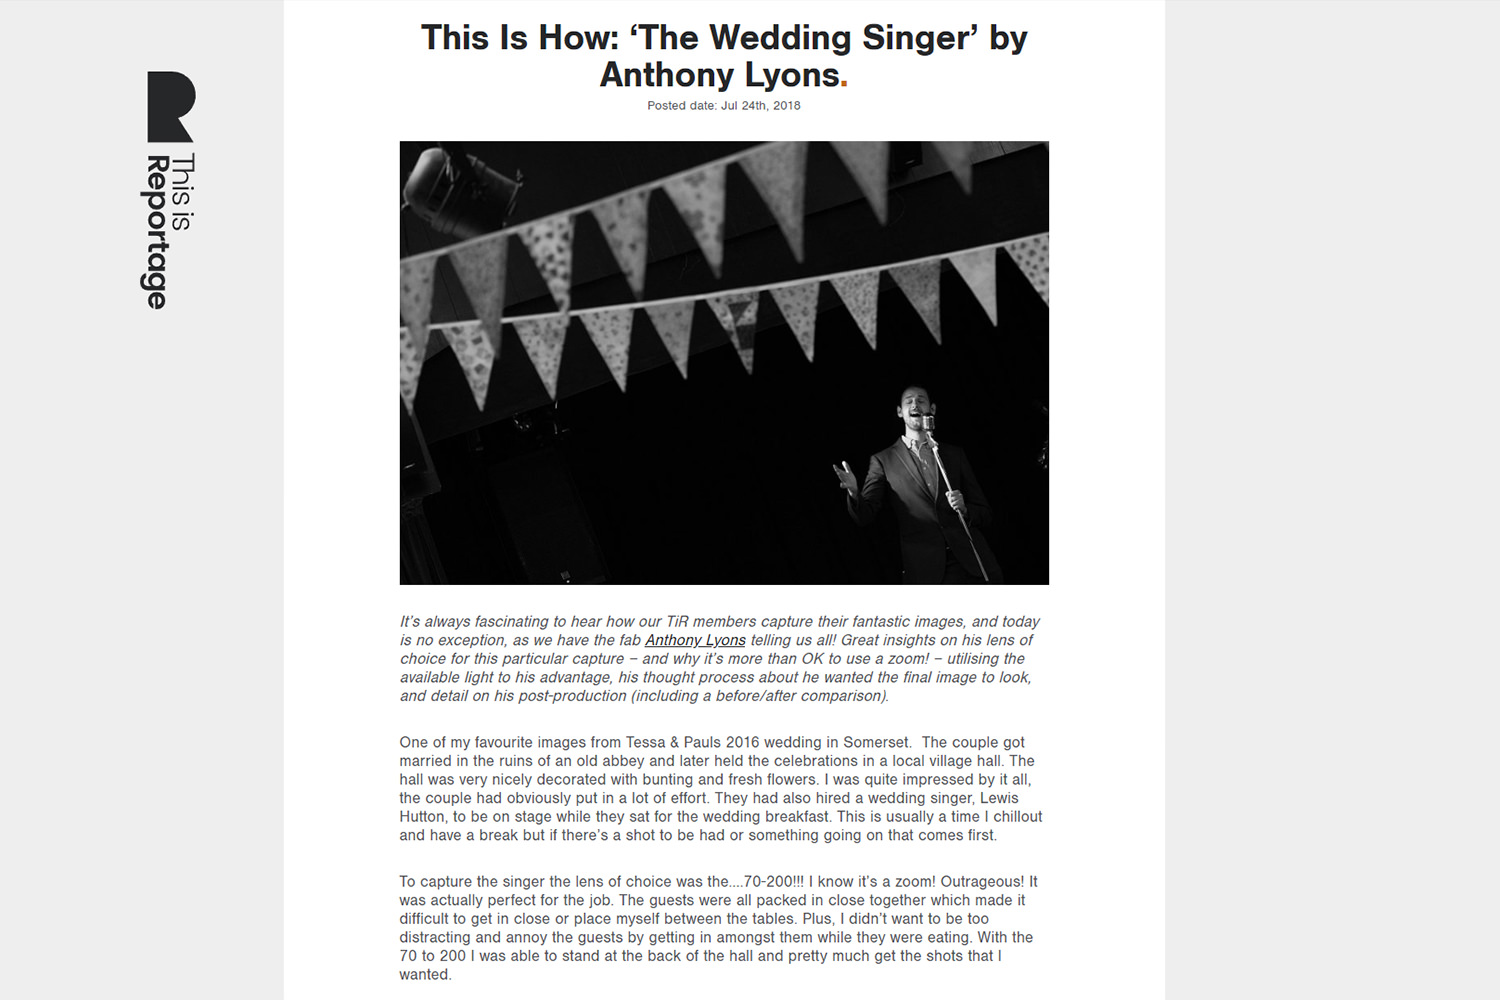 extract from article about devon wedding photographer Anthony Lyons talking about a black & white image of a wedding singer.